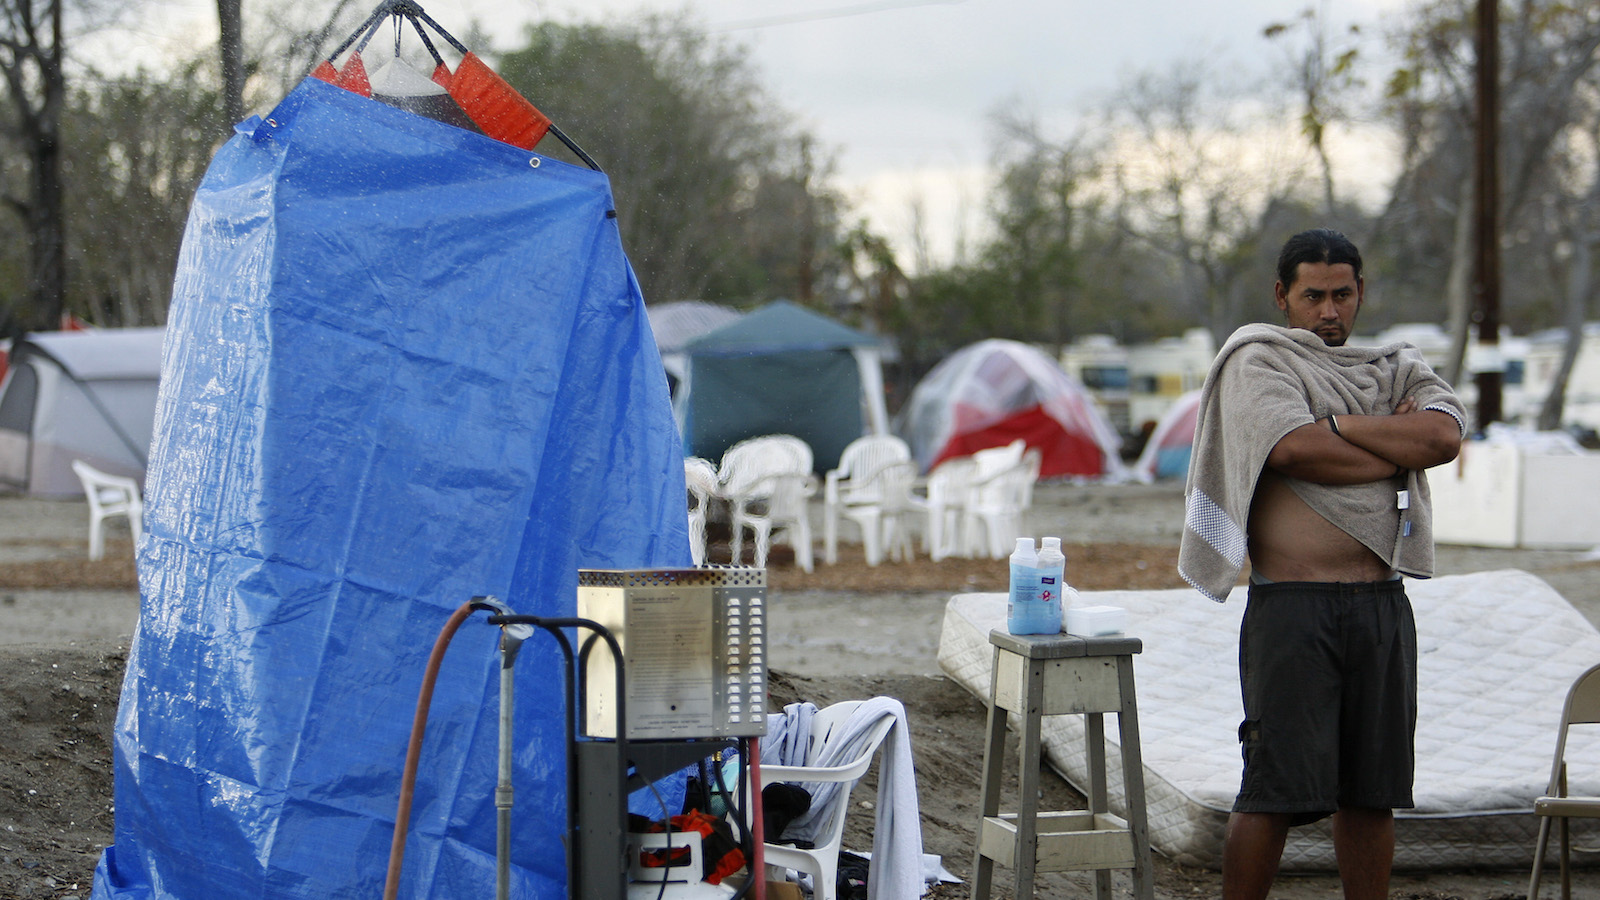 """A man waits to use the only shower for the hundreds of residents at """"tent city"""", a terminus for the homeless in Ontario, a suburb outside Los Angeles, California December 19, 2007. The noisy, dusty camp sprang up in July with 20 residents and now numbers 200 people, including several children, and is still growing as the region has been hit by the U.S. housing crisis. While no current residents claim to be victims of foreclosure, all agree that """"tent city"""" is a symptom of the wider economic downturn.  Picture taken December 19, 2007.  TO MATCH FEATURE USA-HOUSING/SOCIAL   REUTERS/Lucy Nicholson (UNITED STATES) - RTX4X66"""